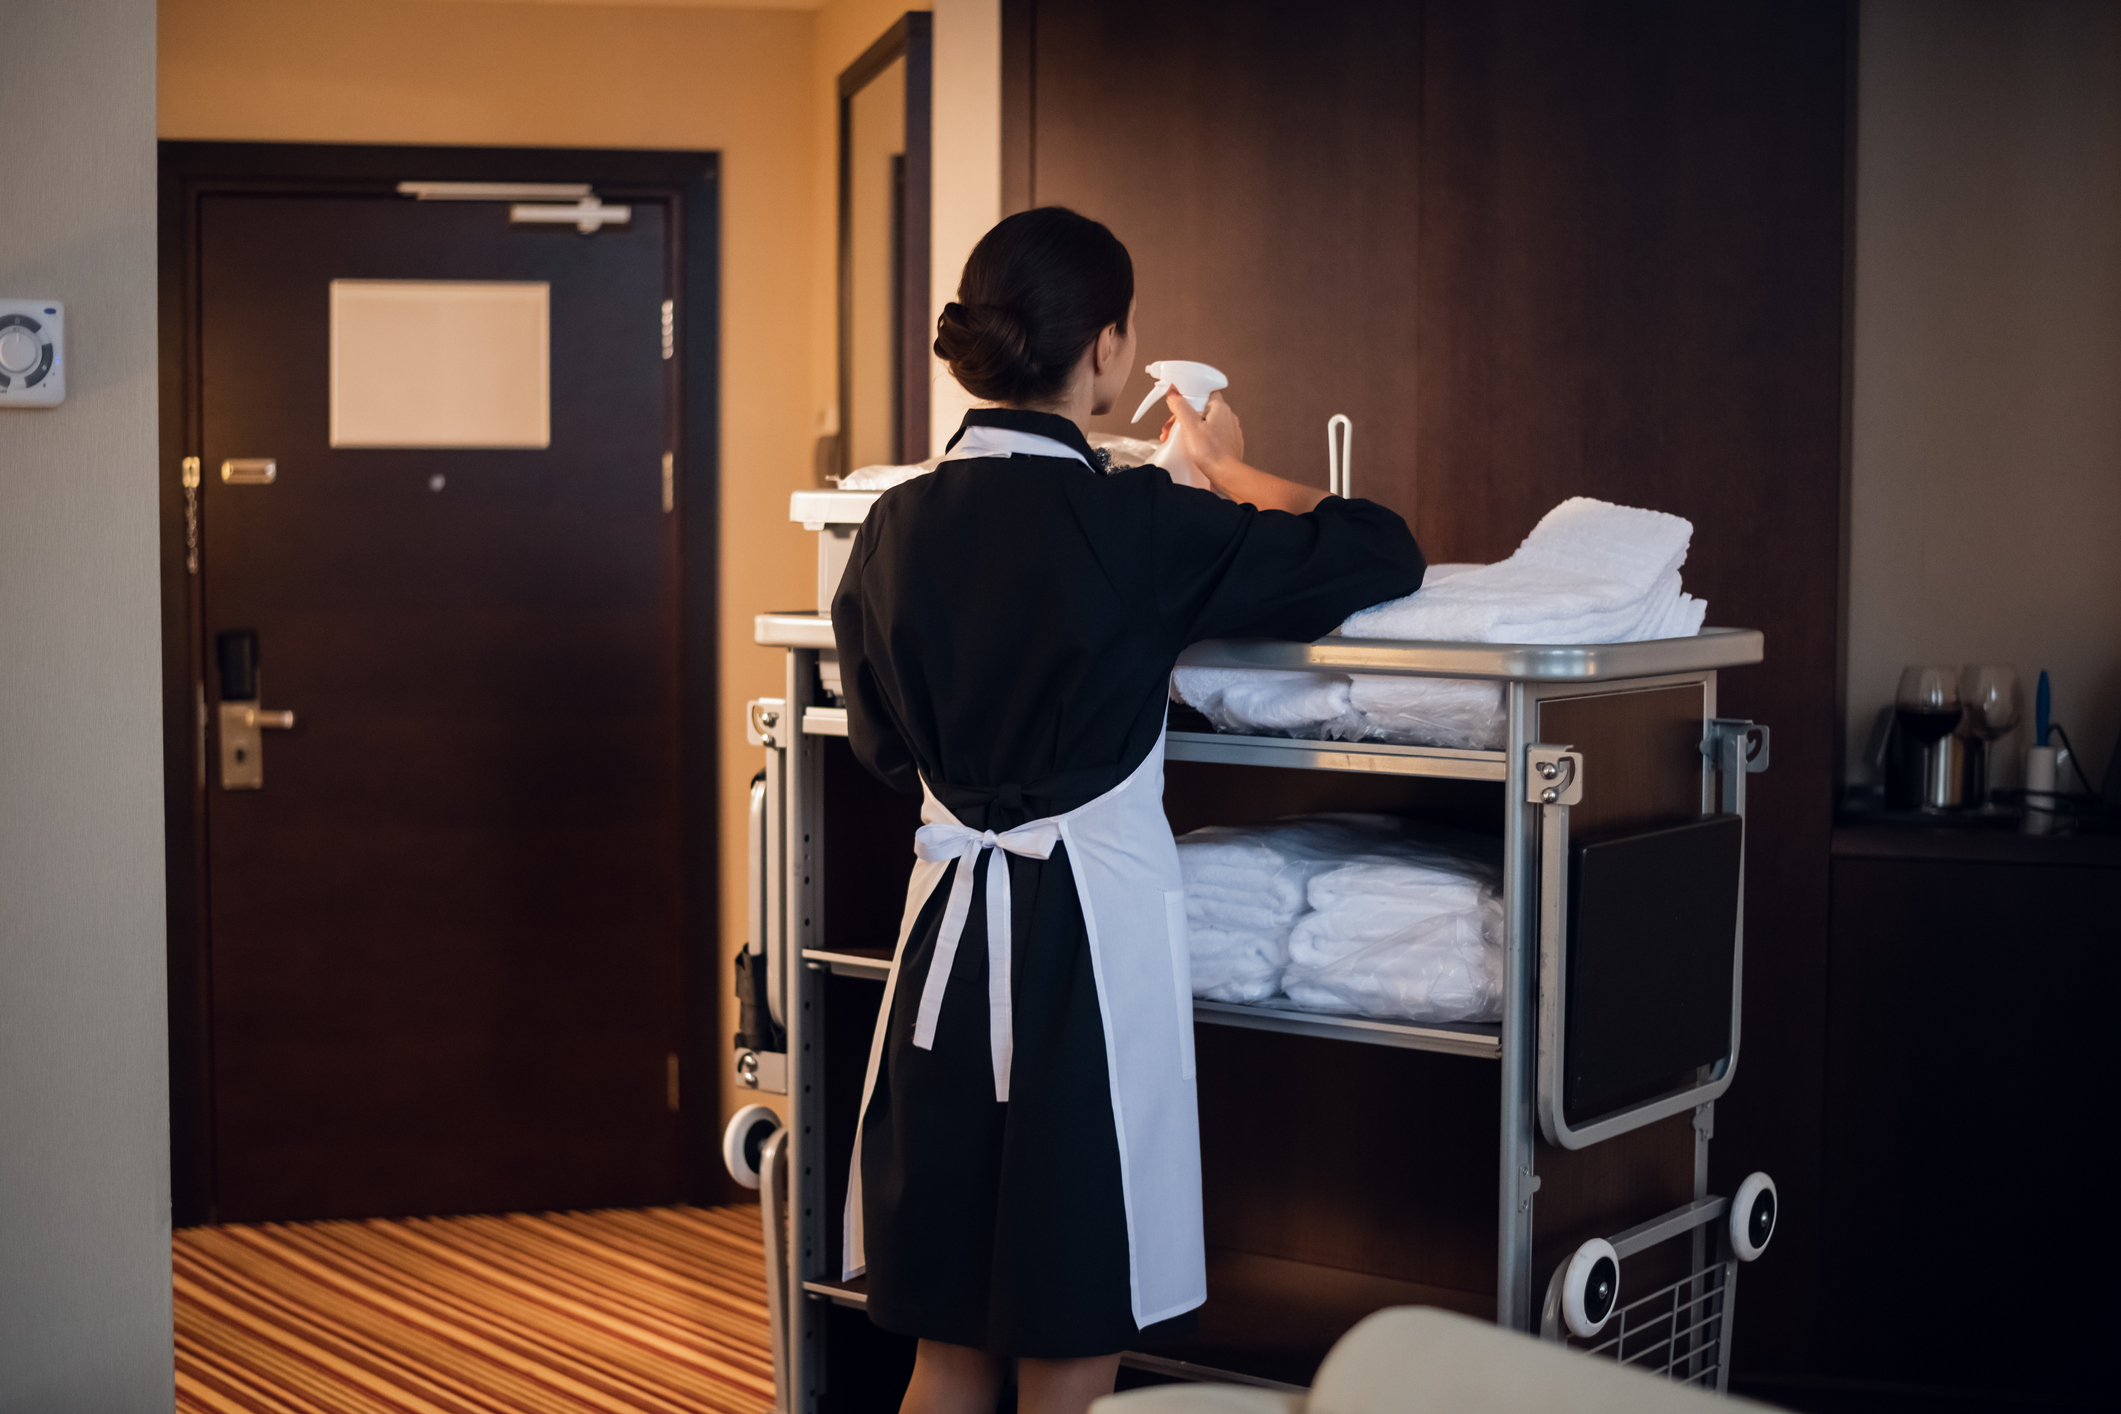 Hotel maid working with cleaning cart and cleaning supplies